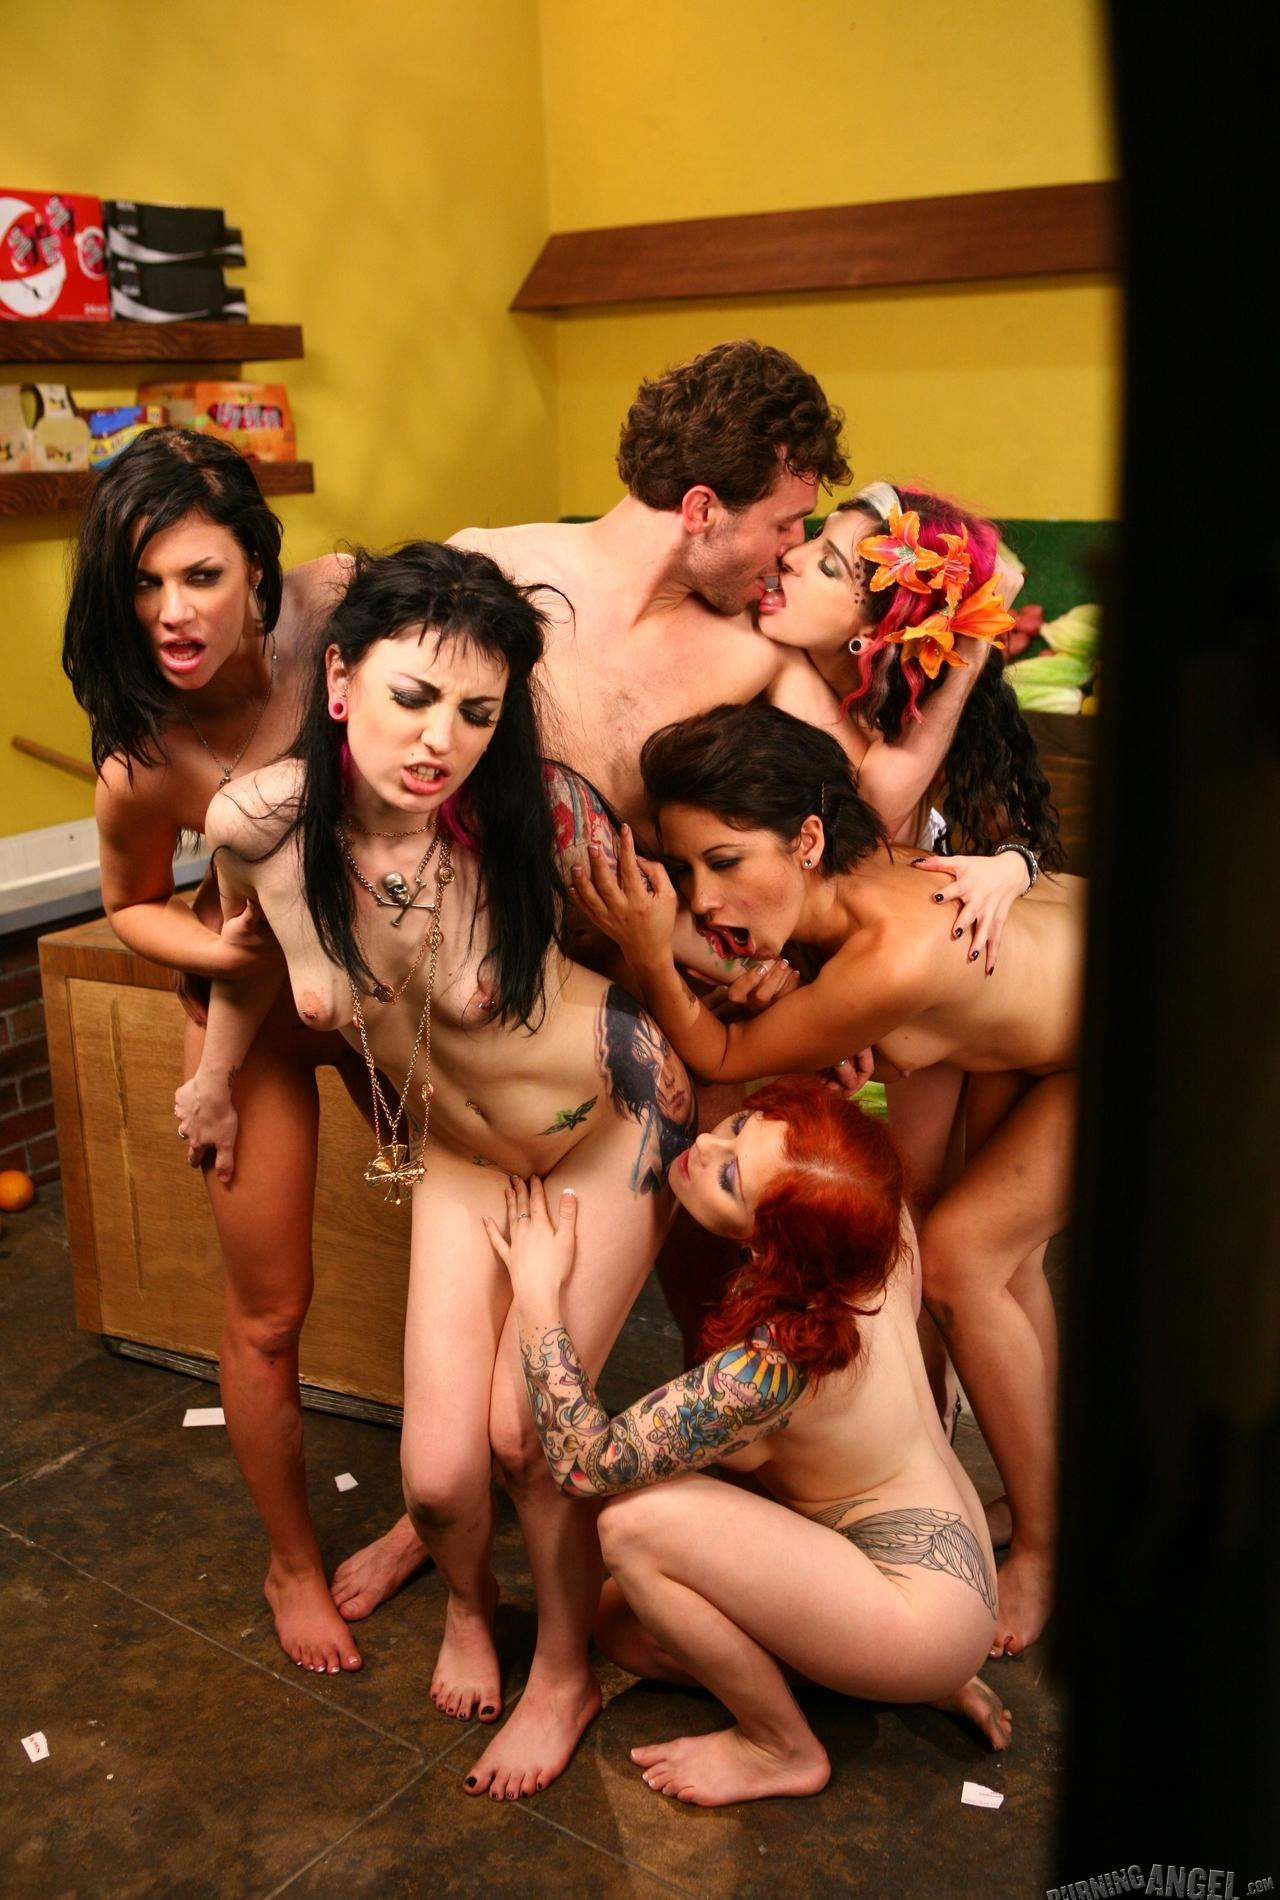 la pink orgy exclusive from burningangel